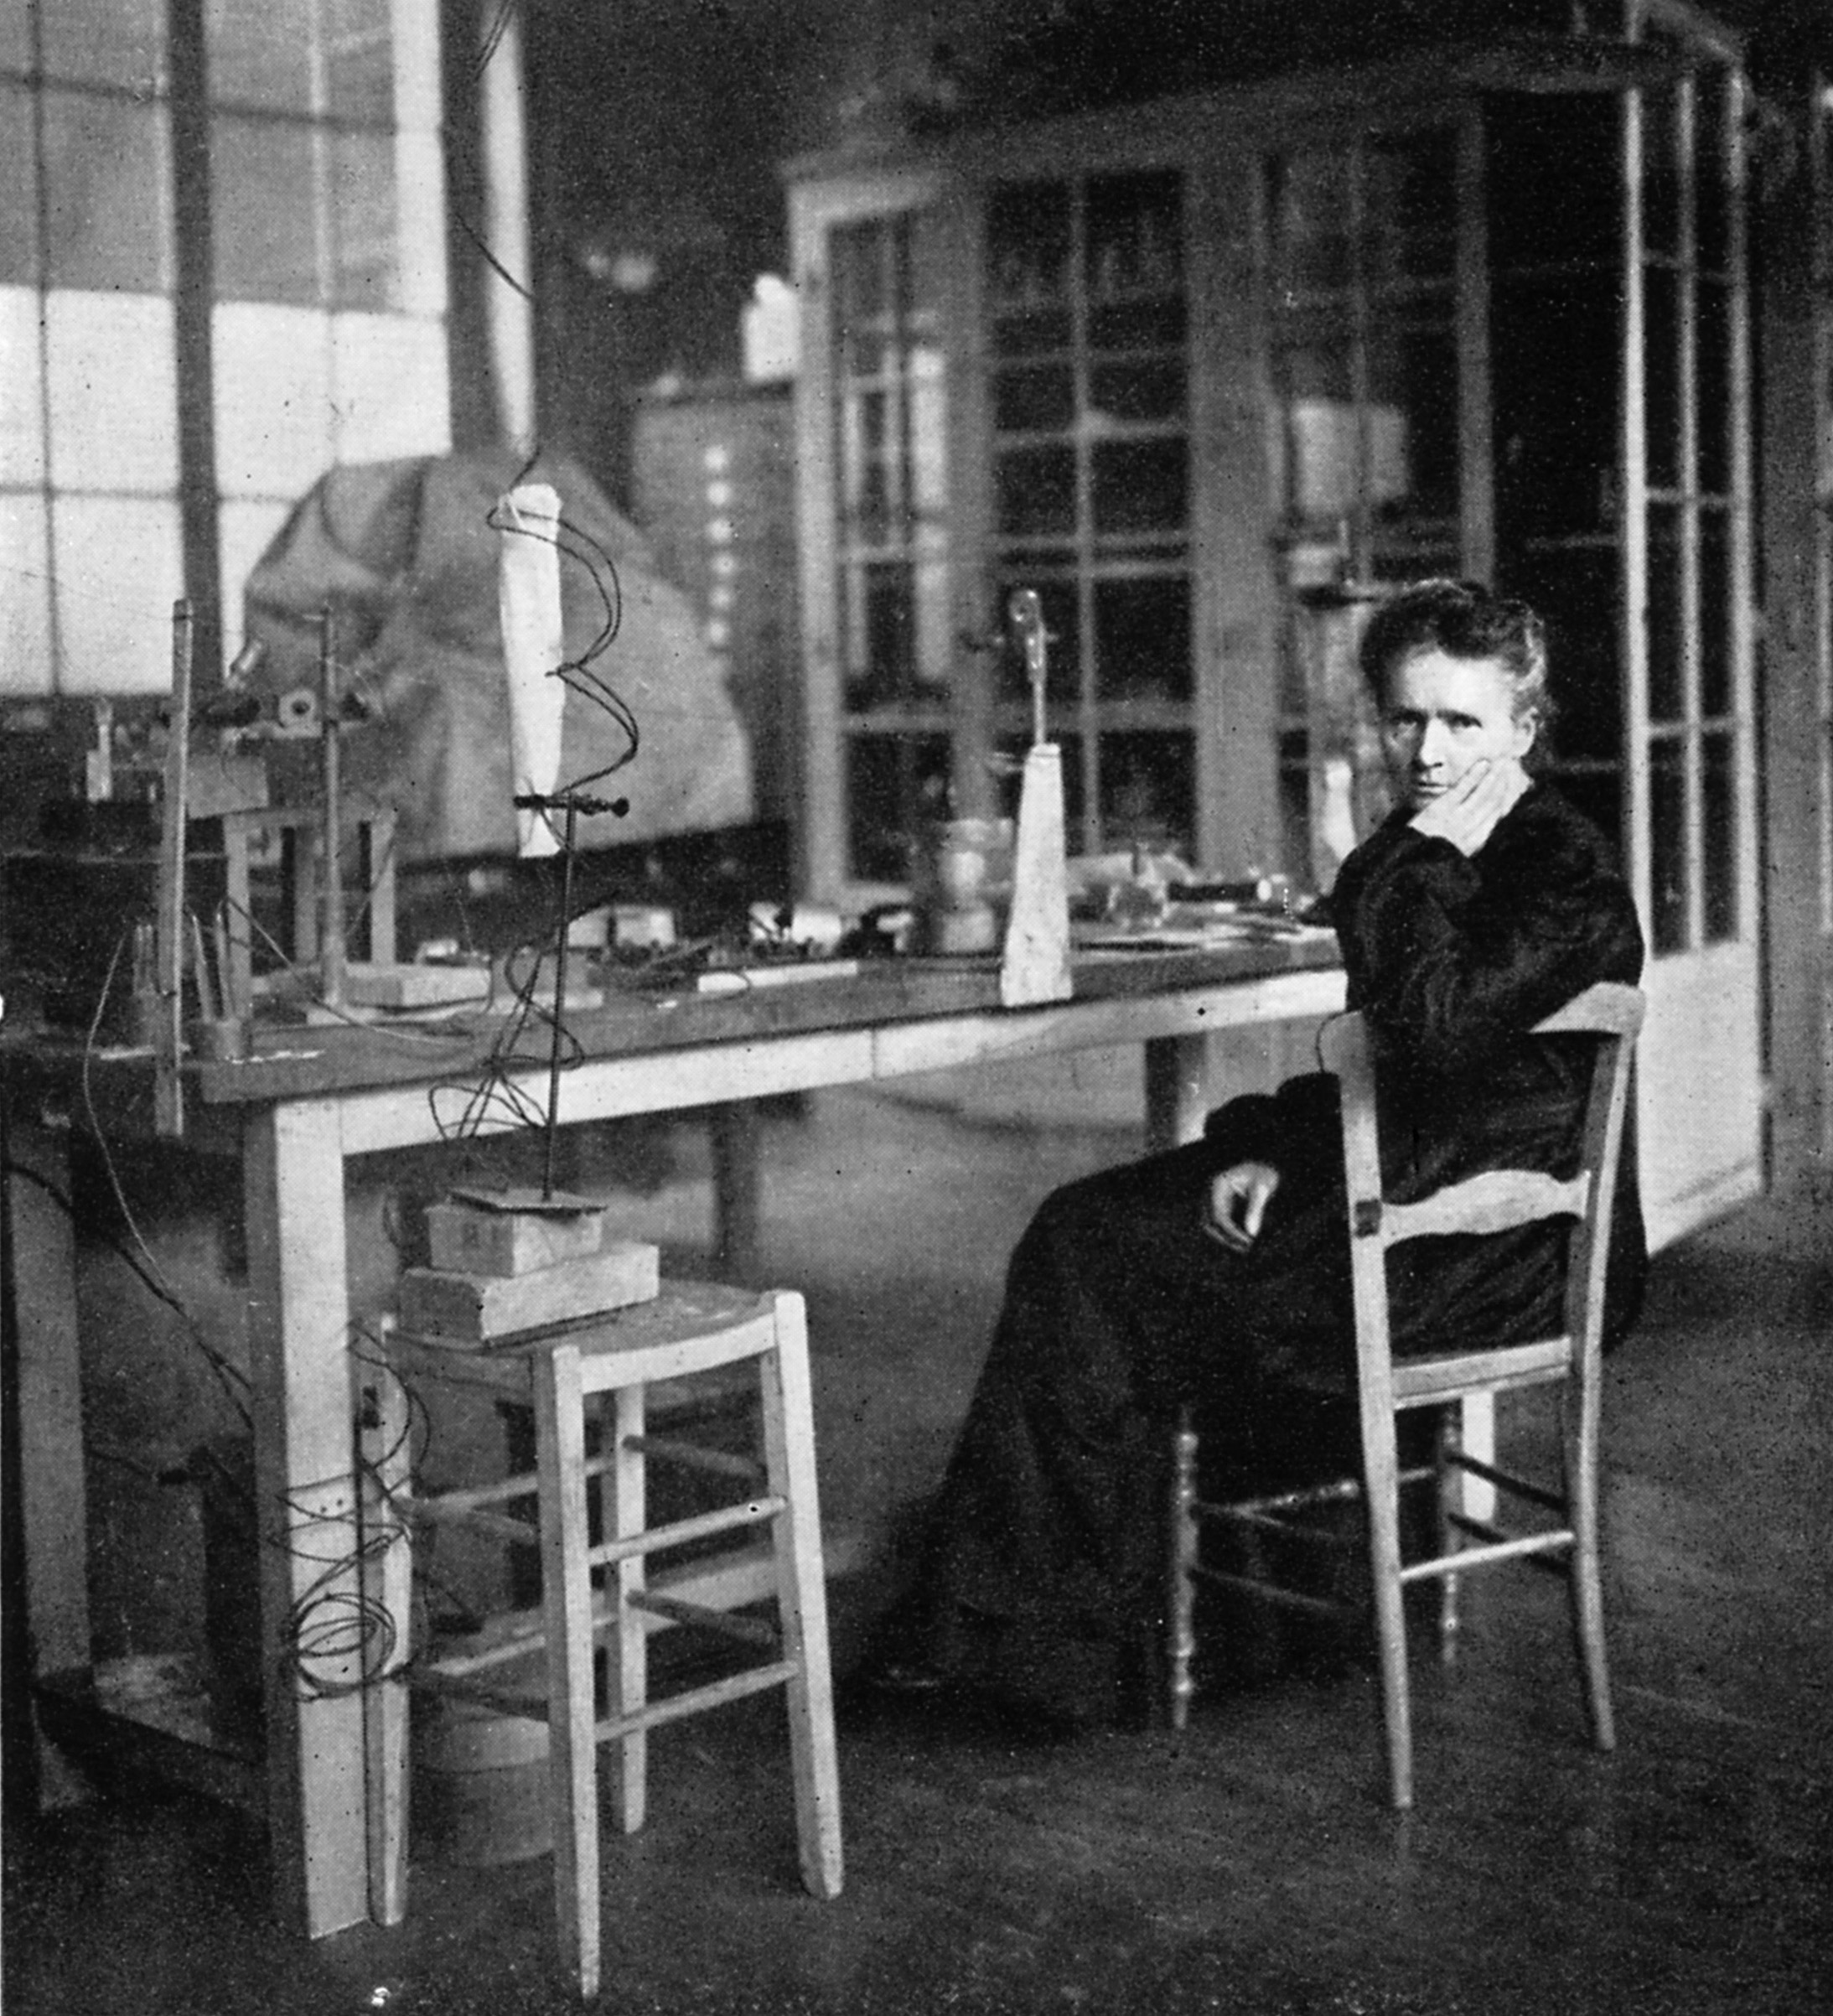 MARIE CURIE became the first woman to win a Nobel Prize in Physics in 1903 and Chemistry in 1911.